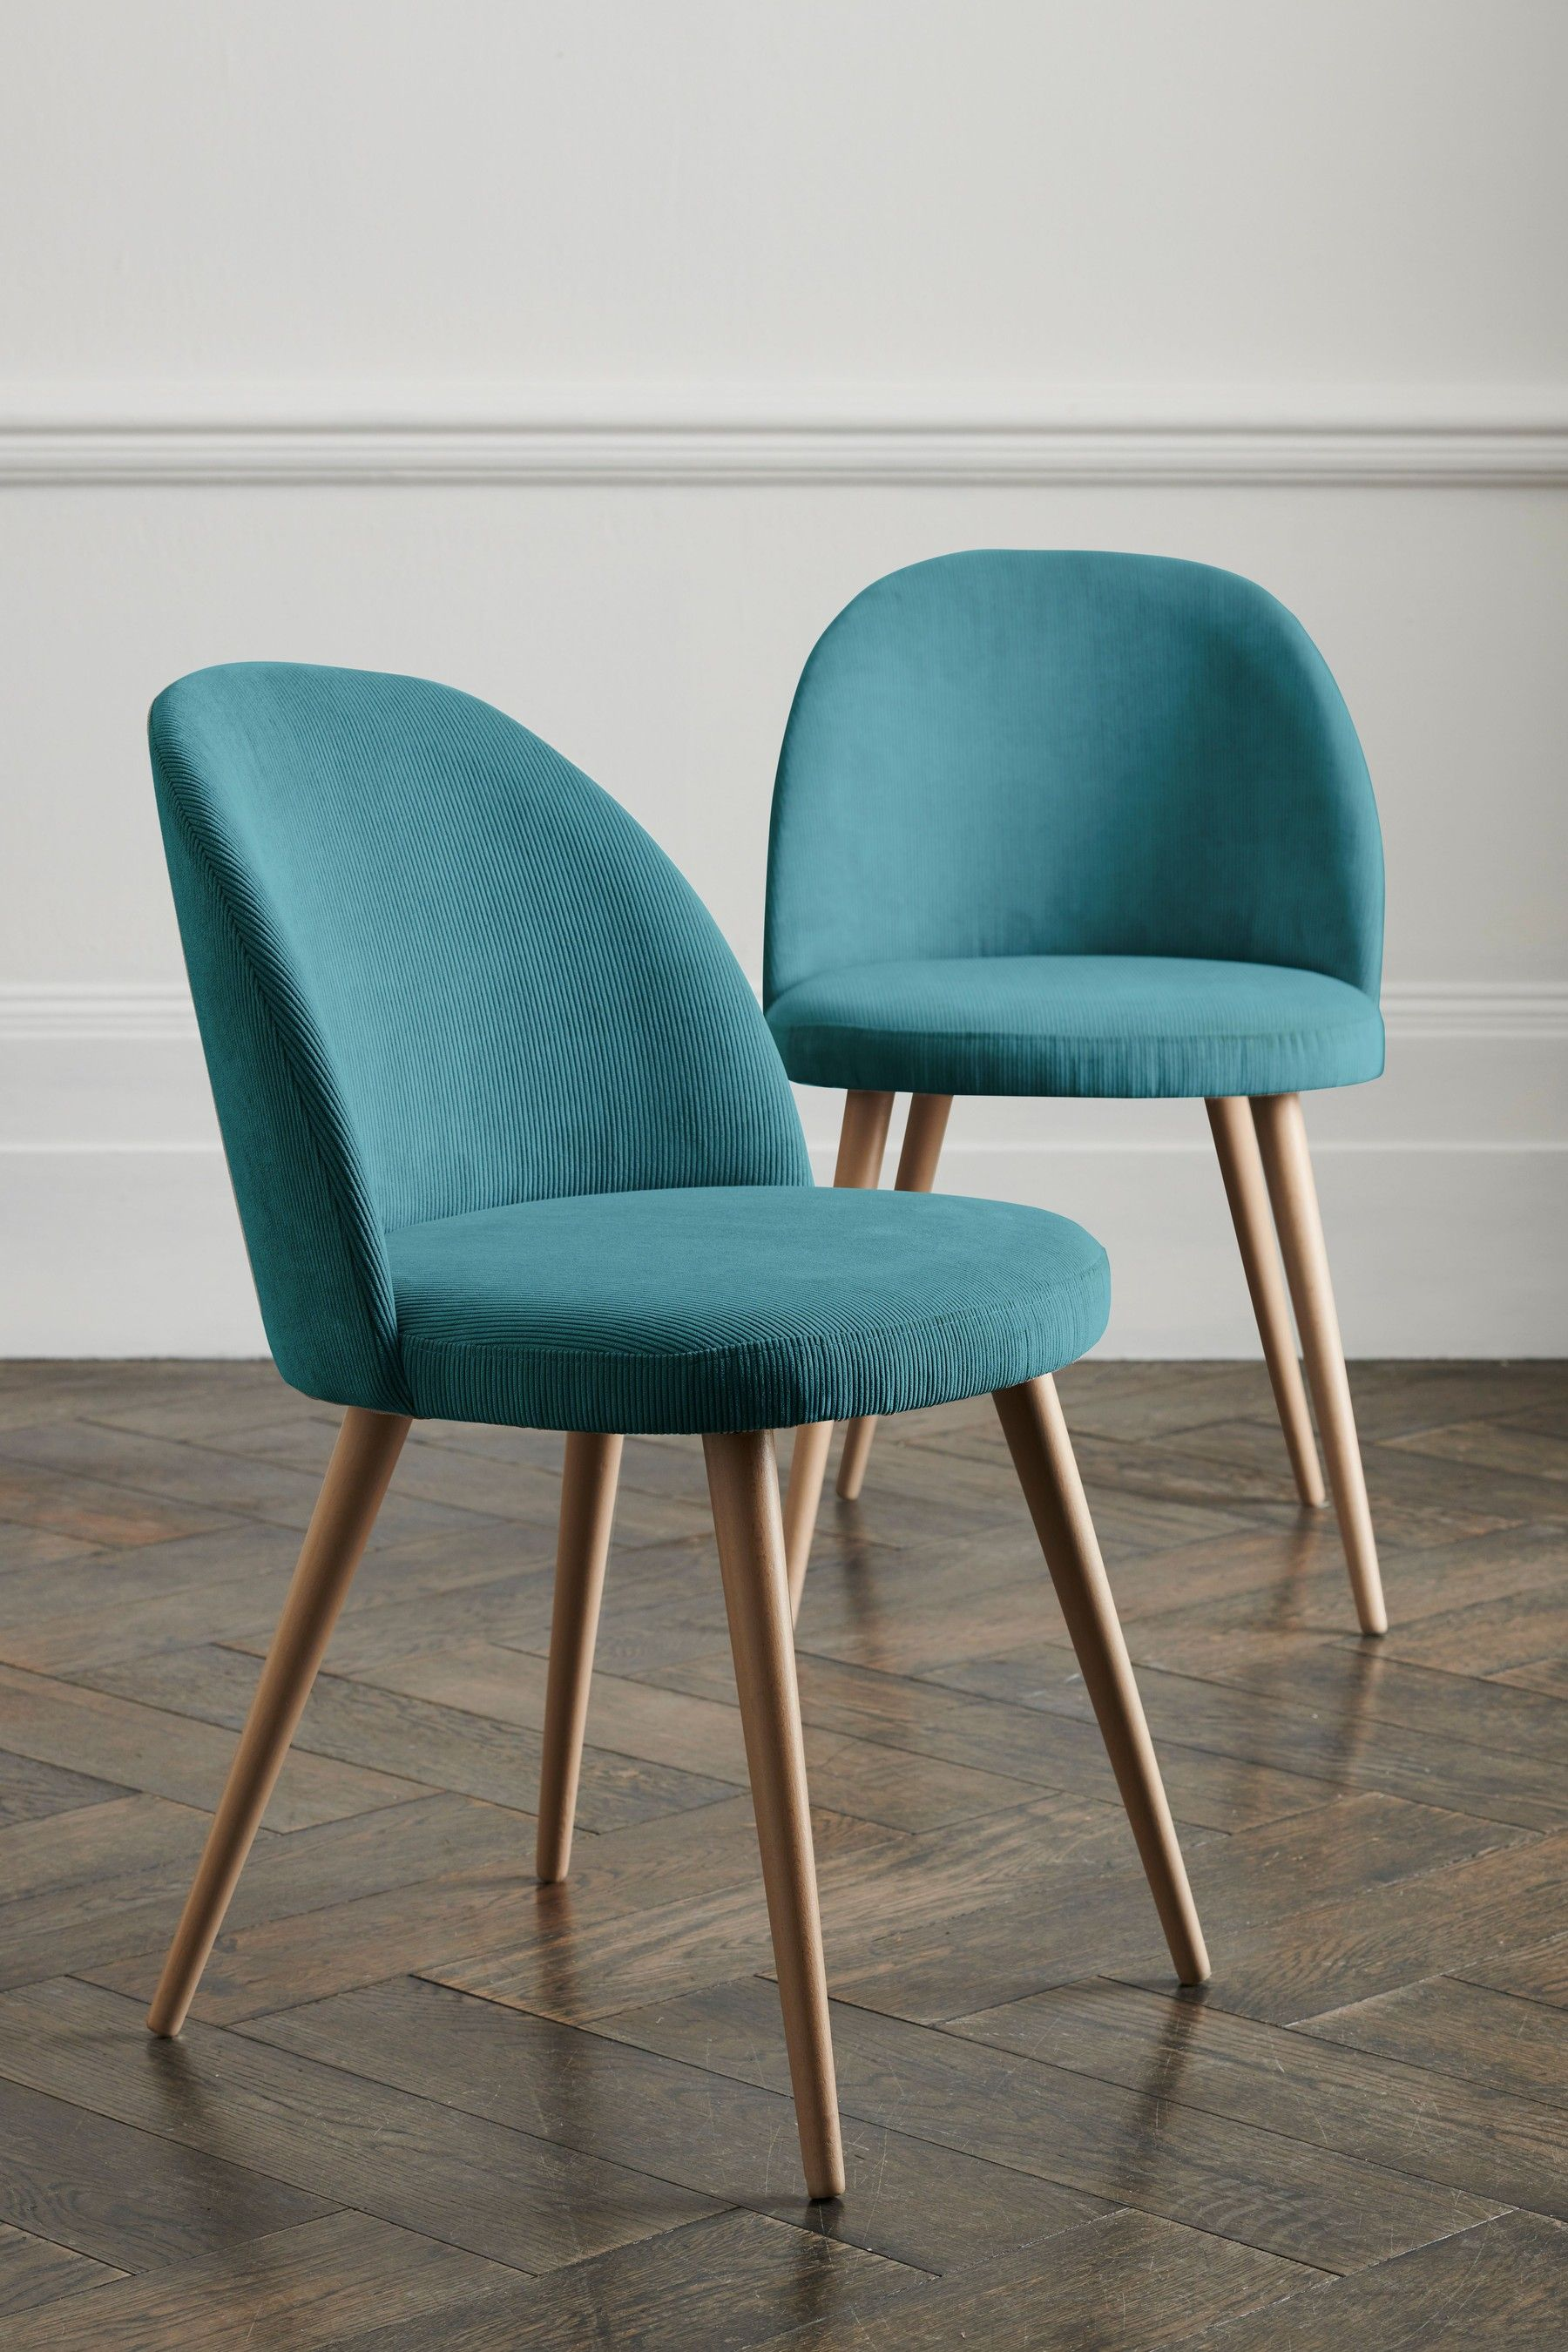 Next Set Of 9 Zola Dining Chairs - Blue  Dining chairs, Dining